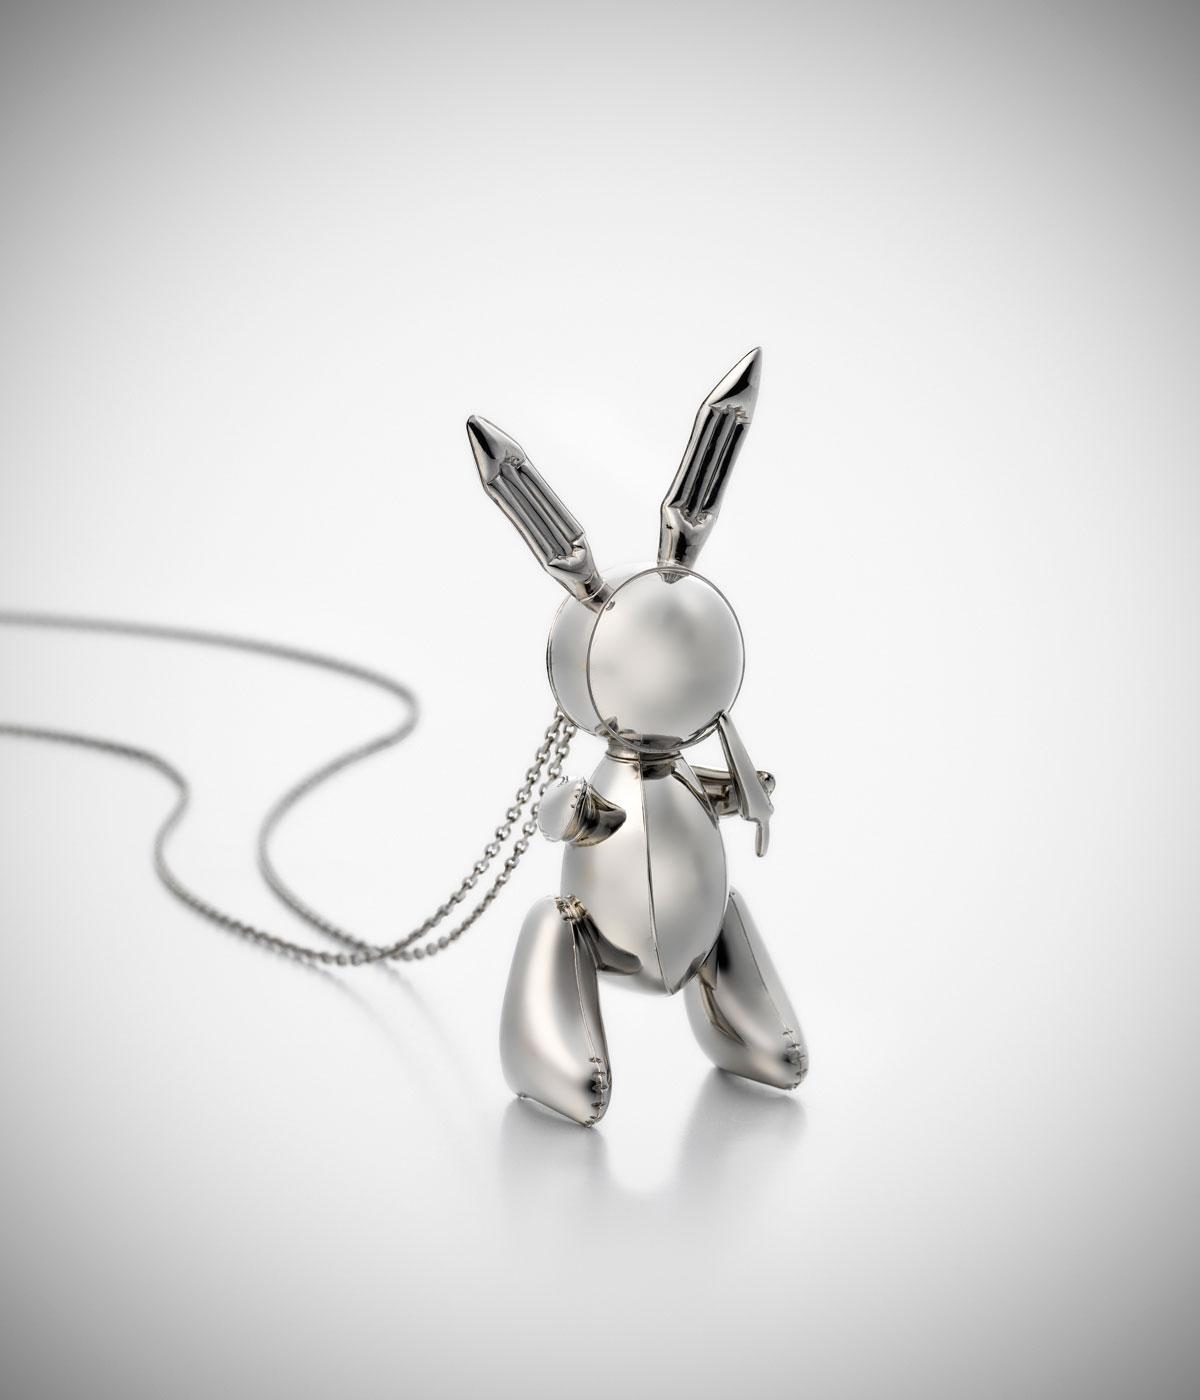 Small platinum rabbit on a necklace